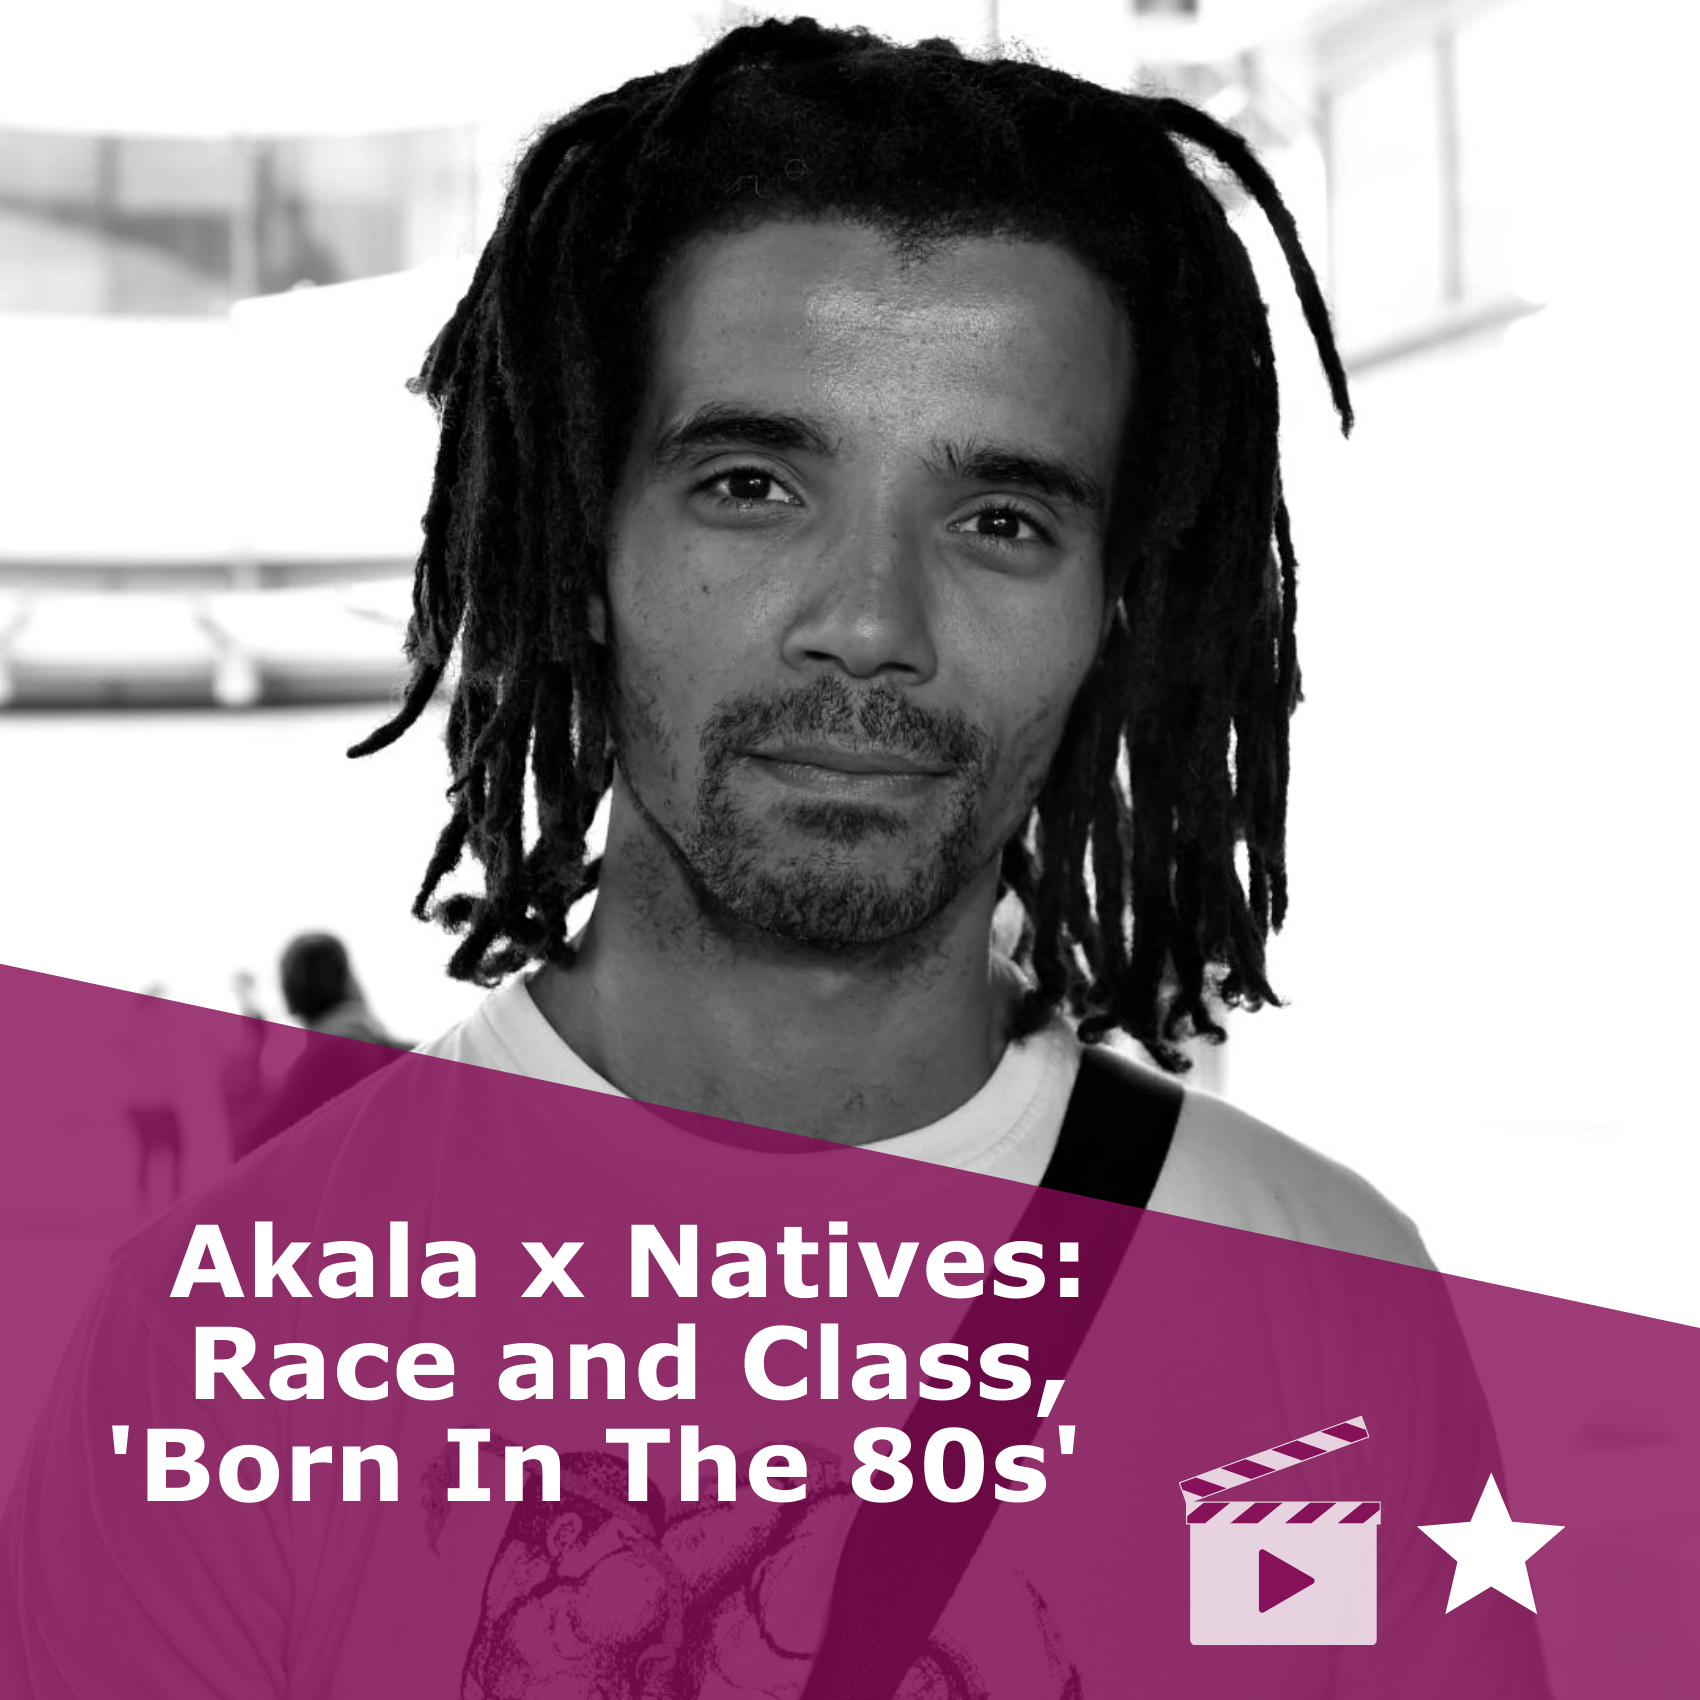 Picture of Akala in black and white. Title 'Akala x Natives: Race and Class, Born in the 80s'. It is a video, rated one star.